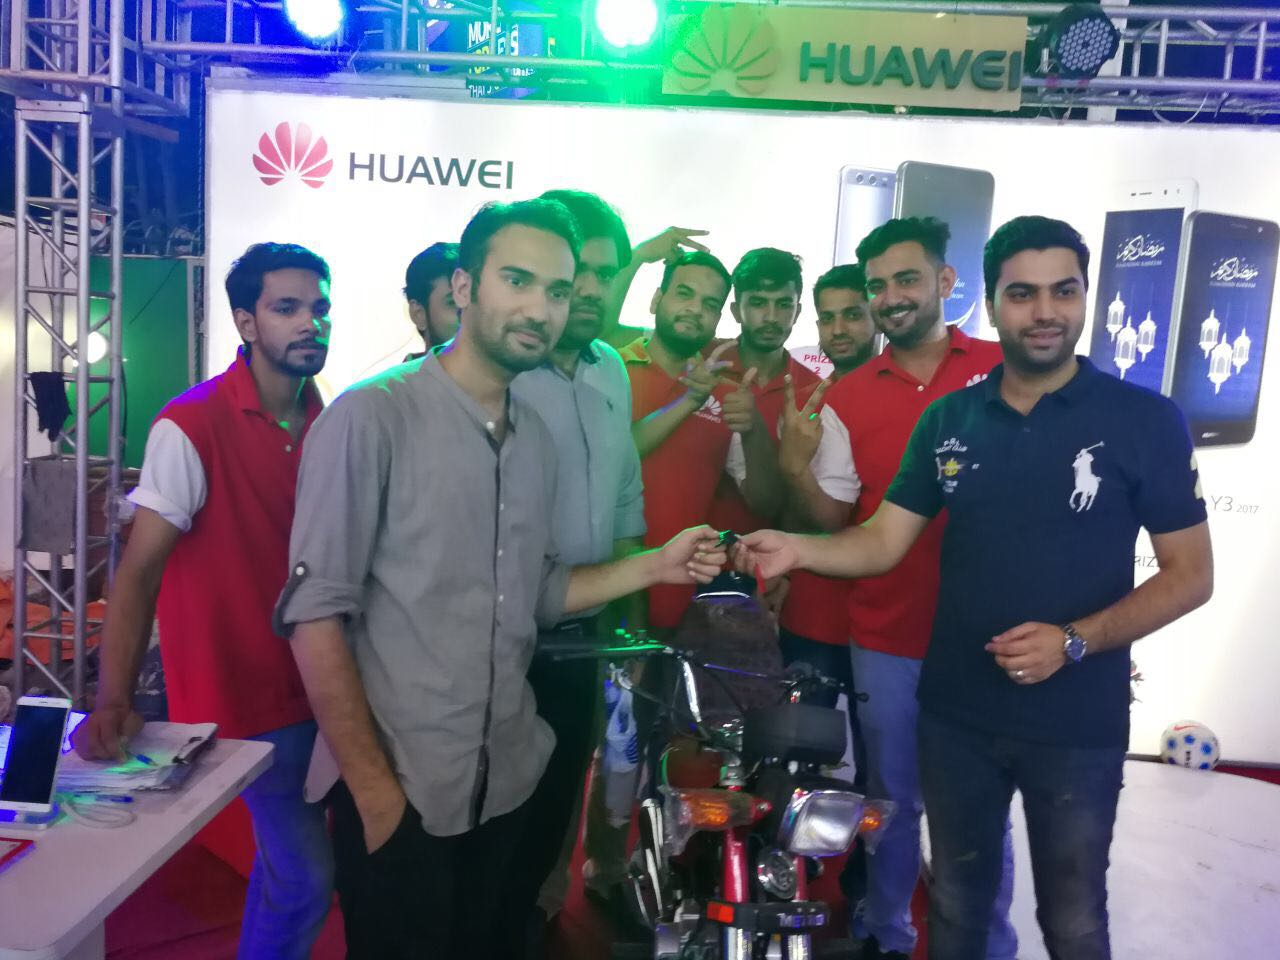 HUAWEI'S Amazing promotional Campaign Closes With A Bang!